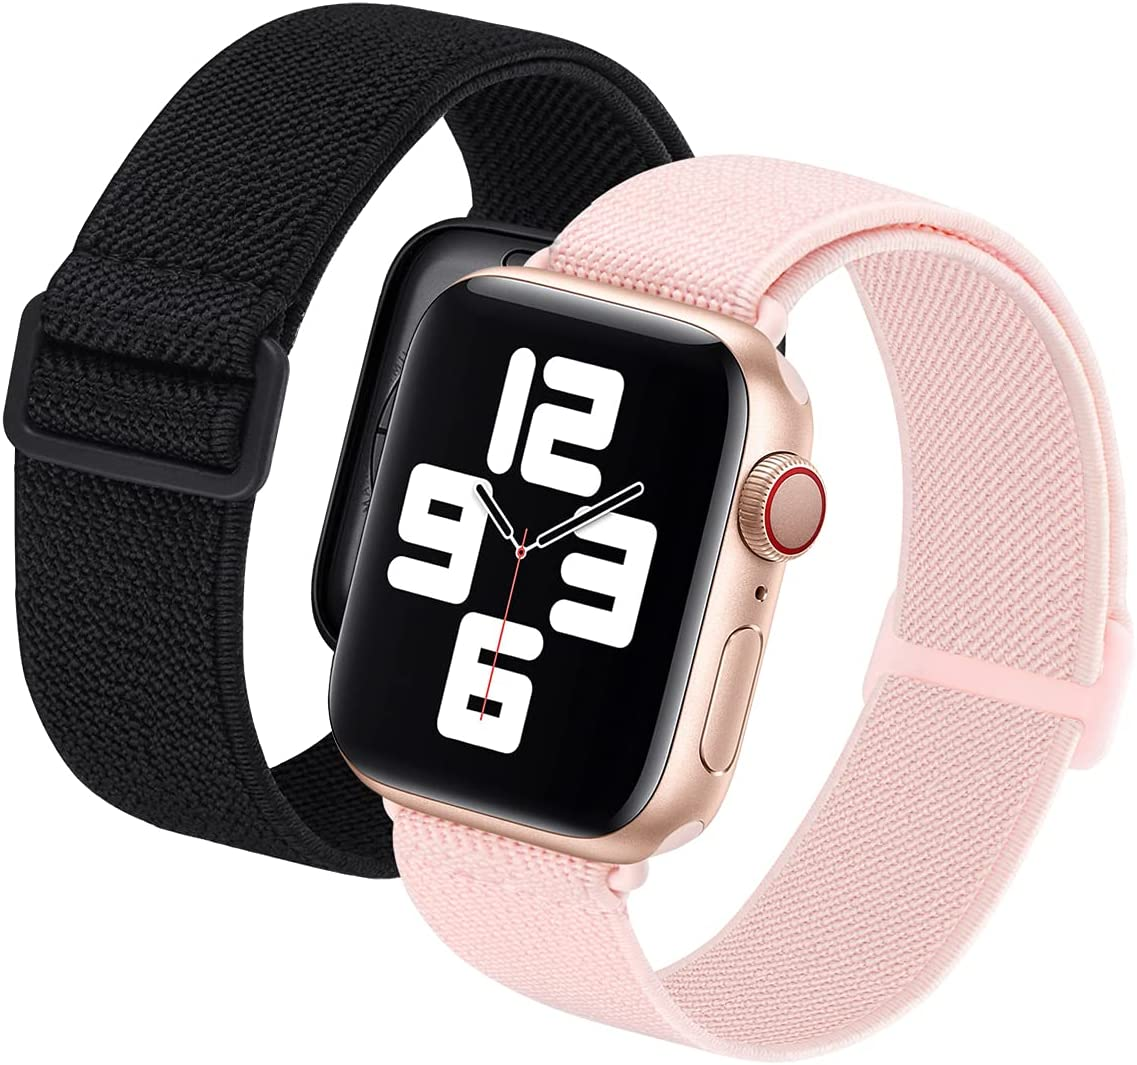 2 Pack Sport Elastic Nylon Compatible with Apple Watch Bands 40mm 38mm, Adjustable Lightweight & Breathable Woven Stretches Strap for iWatch Series 6/5/4/3/2/1/SE Men Women Black/Pink Sand